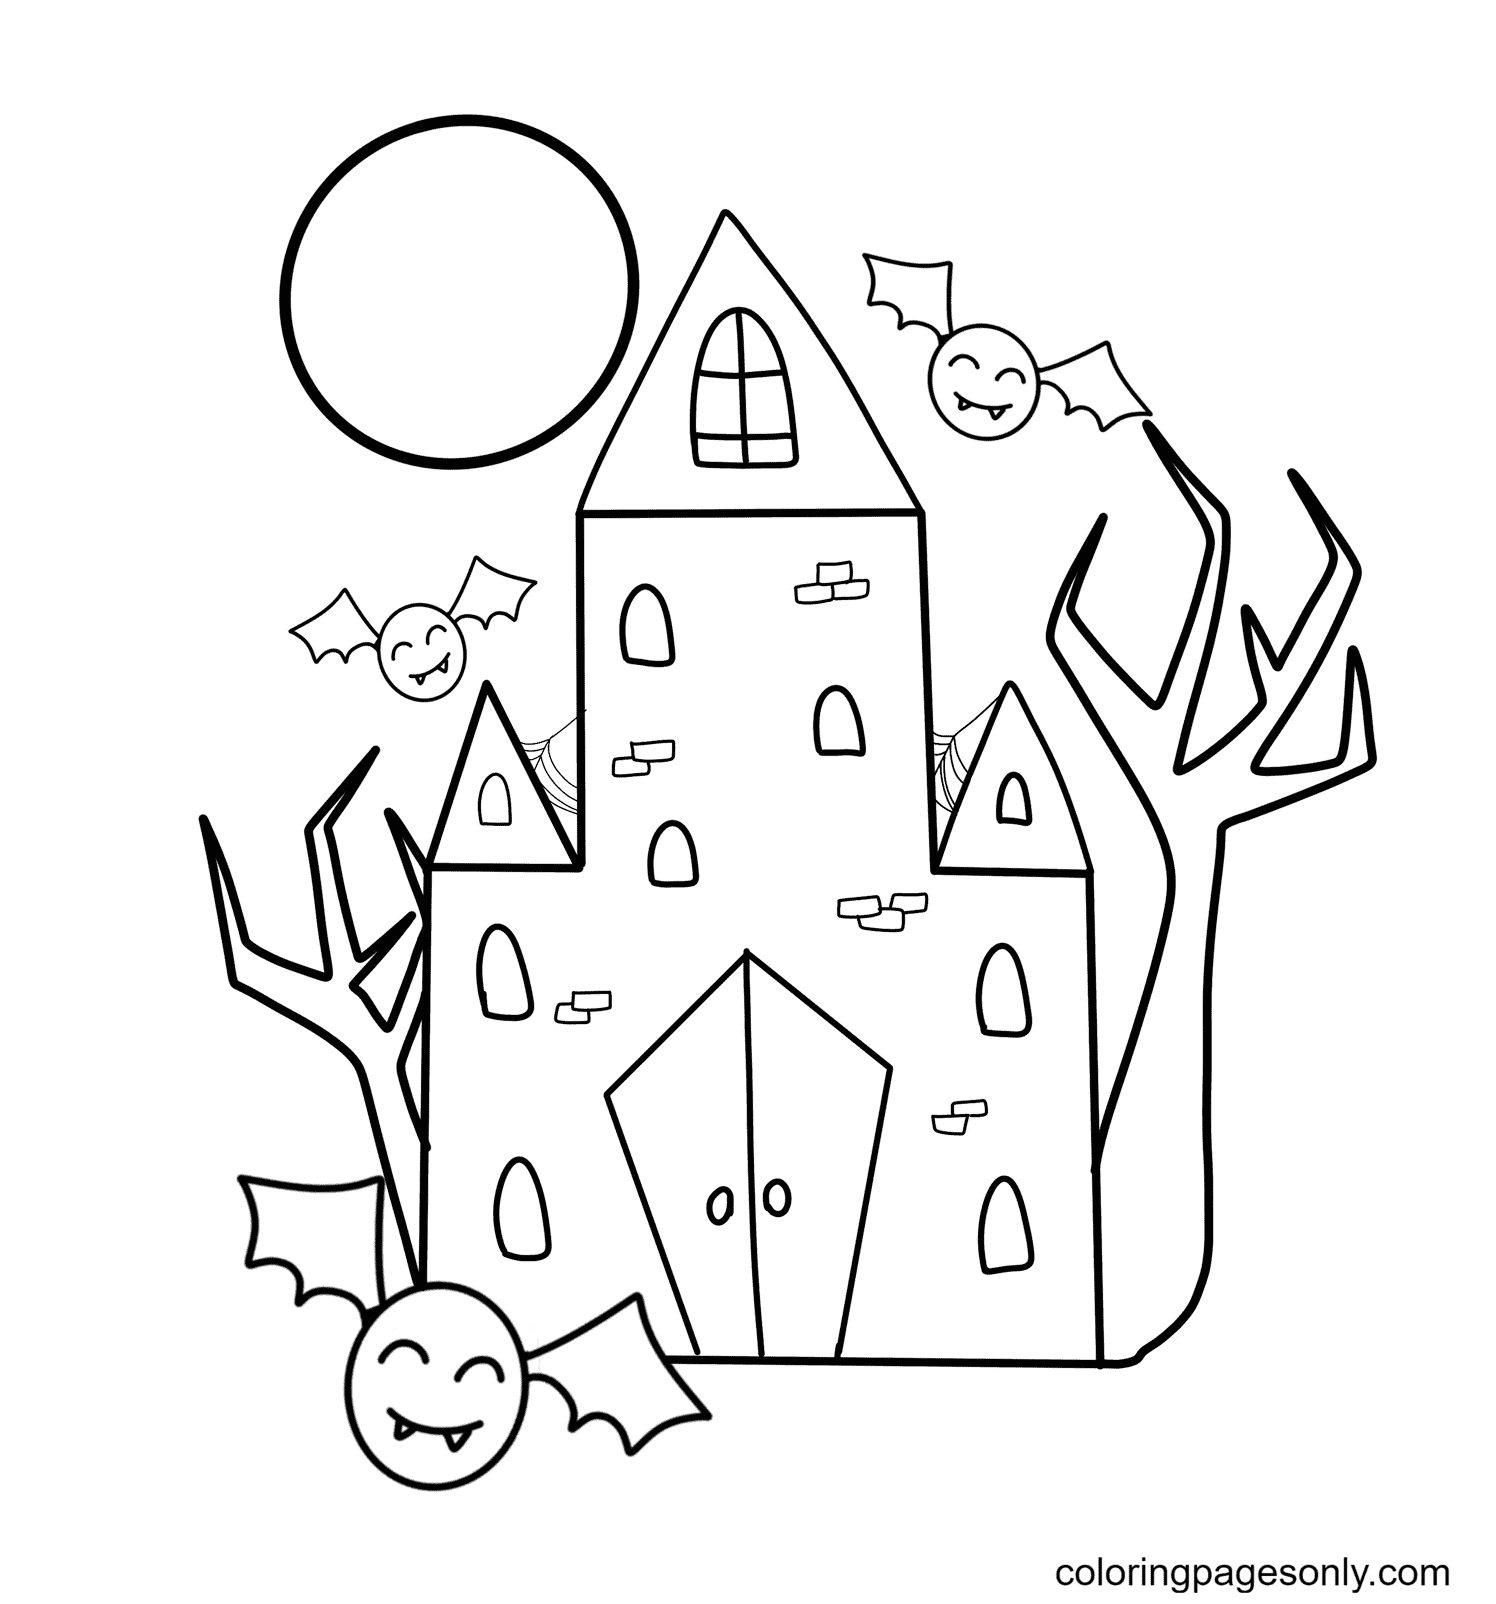 Haunted House and Cute Bats Coloring Page